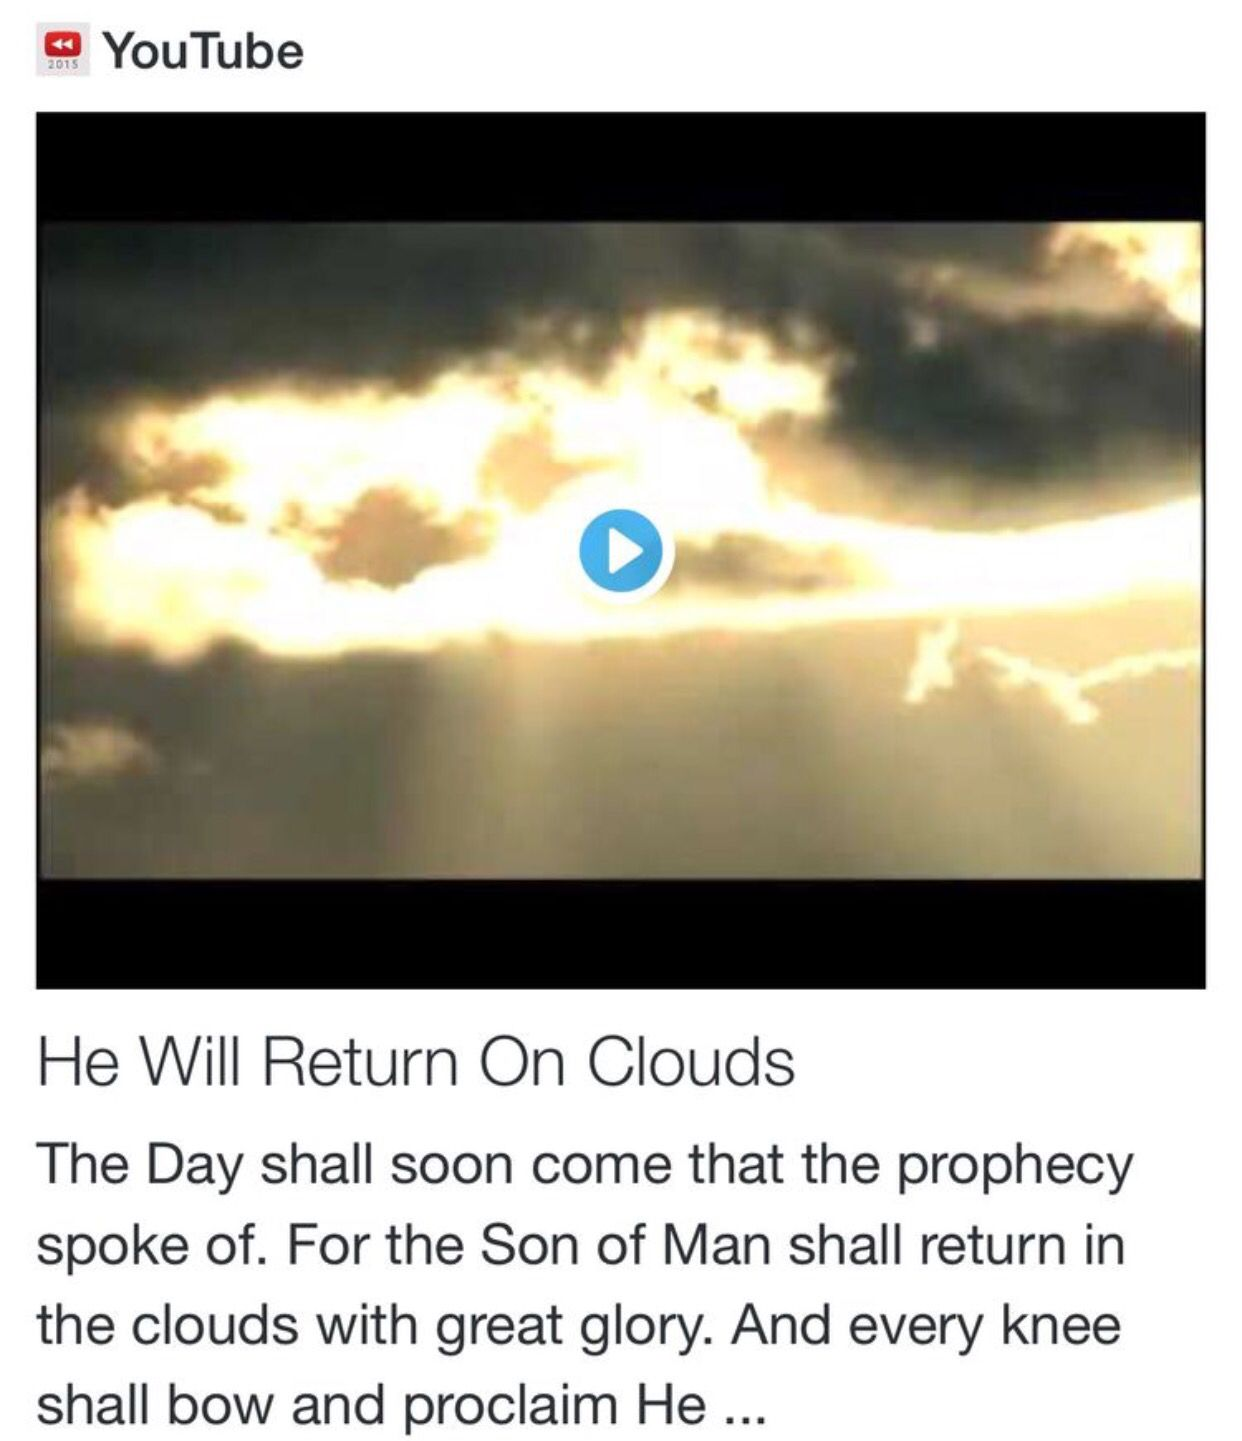 He Will Return On Clouds from Signs, Science and Symbols of the Prophecy https://t.co/1veQL1tinR